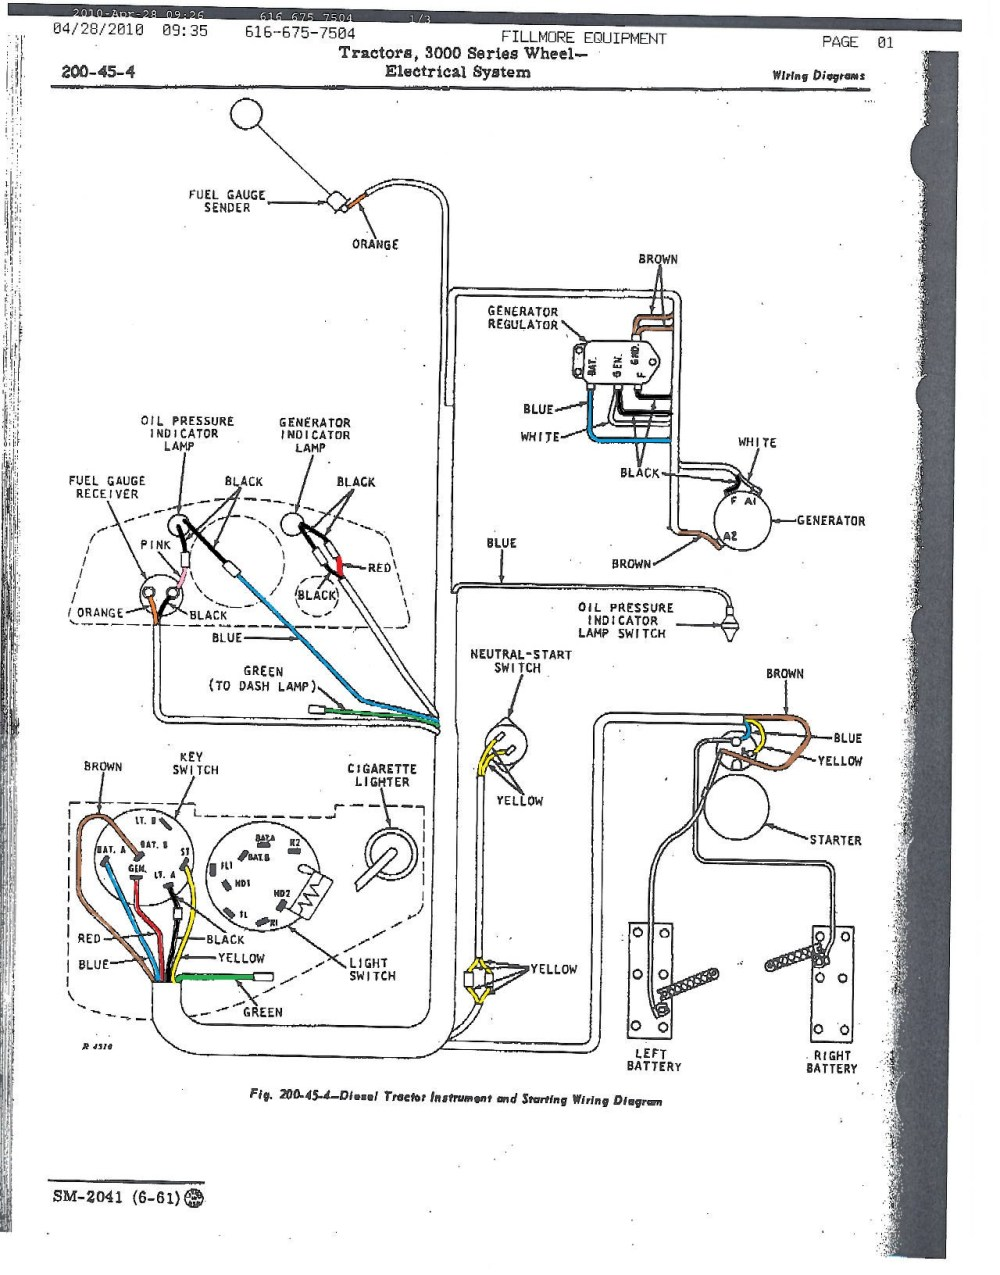 medium resolution of 3010 rh charliemckinley com kawasaki lawn mower engine diagram kawasaki fuel injected engine diagram